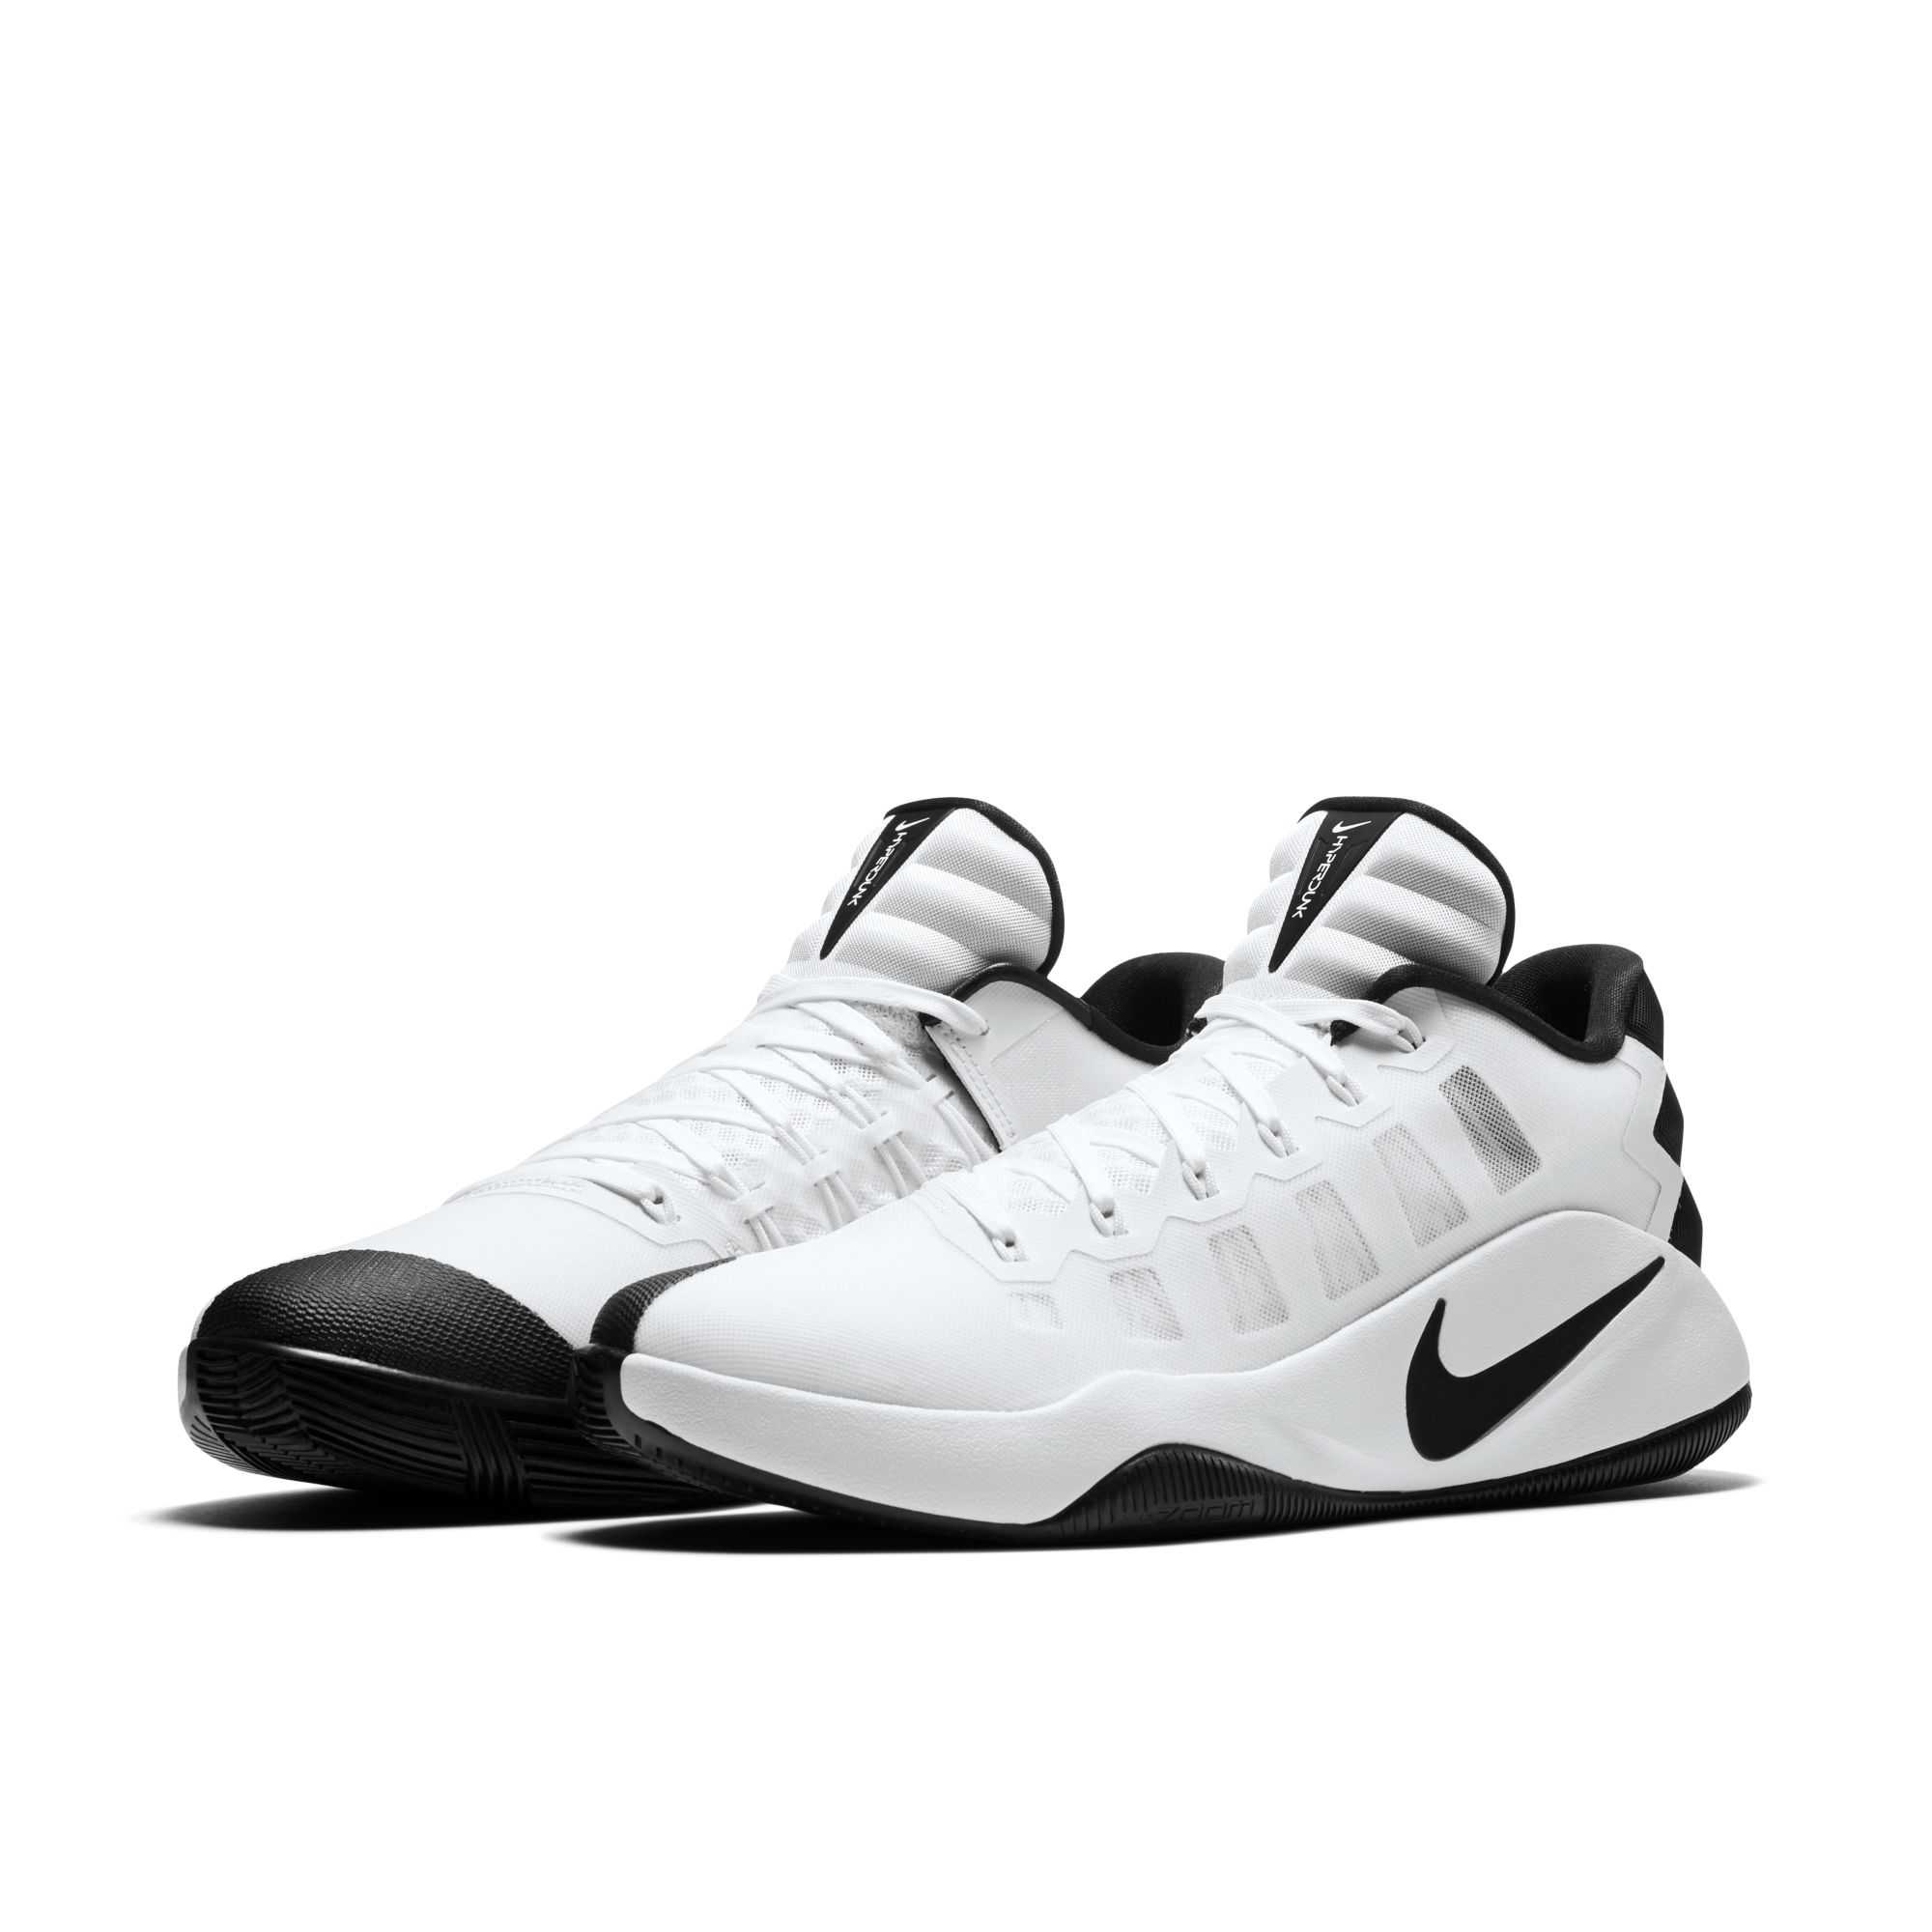 Low Black Court Shoes